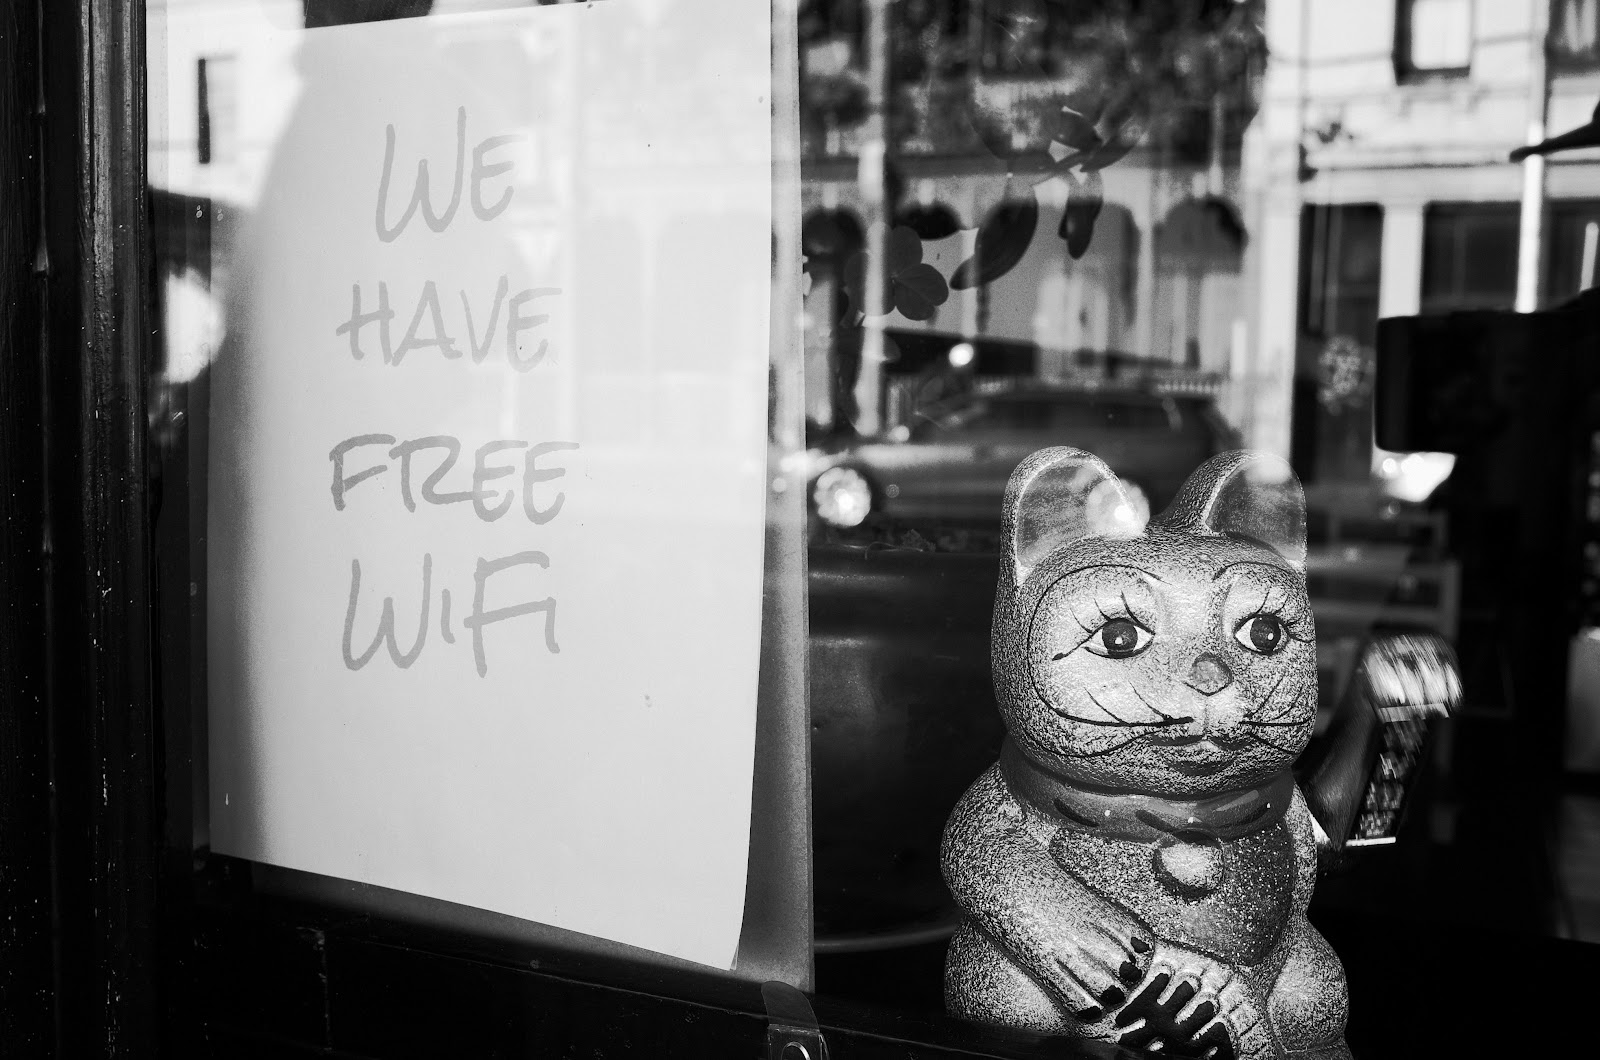 A cat waves in a window next to a Wi-Fi sign